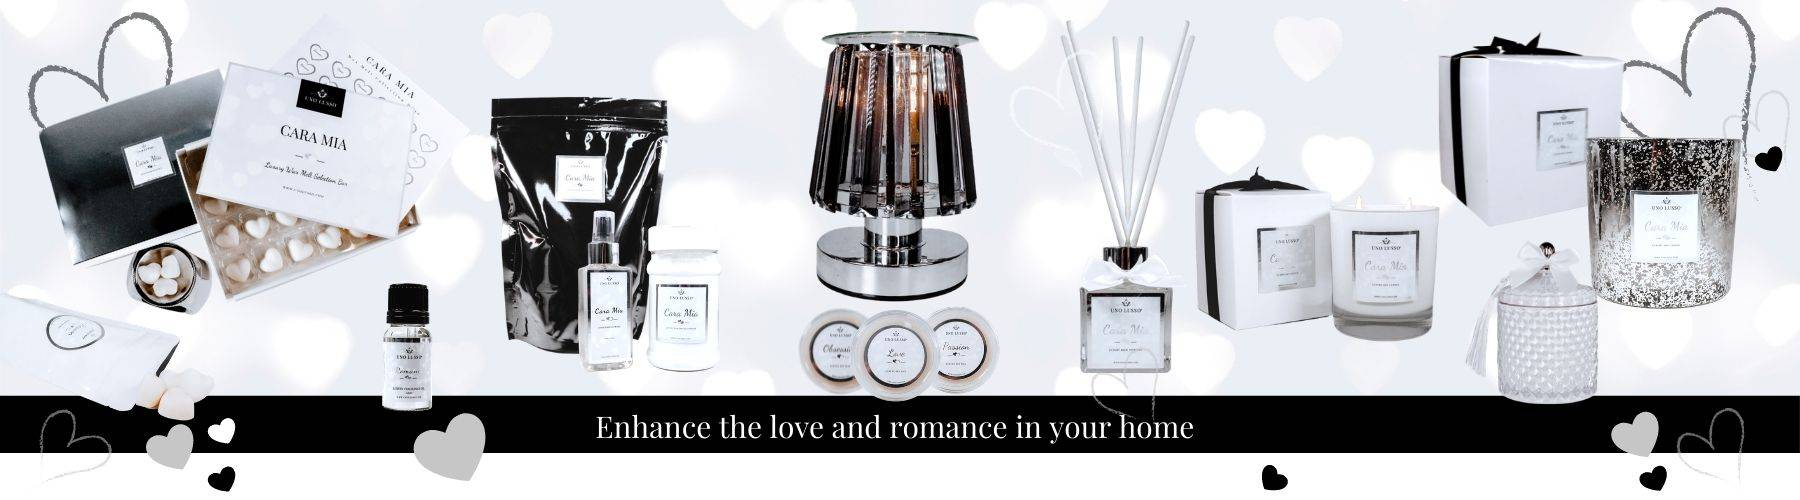 Cara  Mia - The love & romance home fragrance collection of candles, wax melts, room sprays, reed diffusers and more